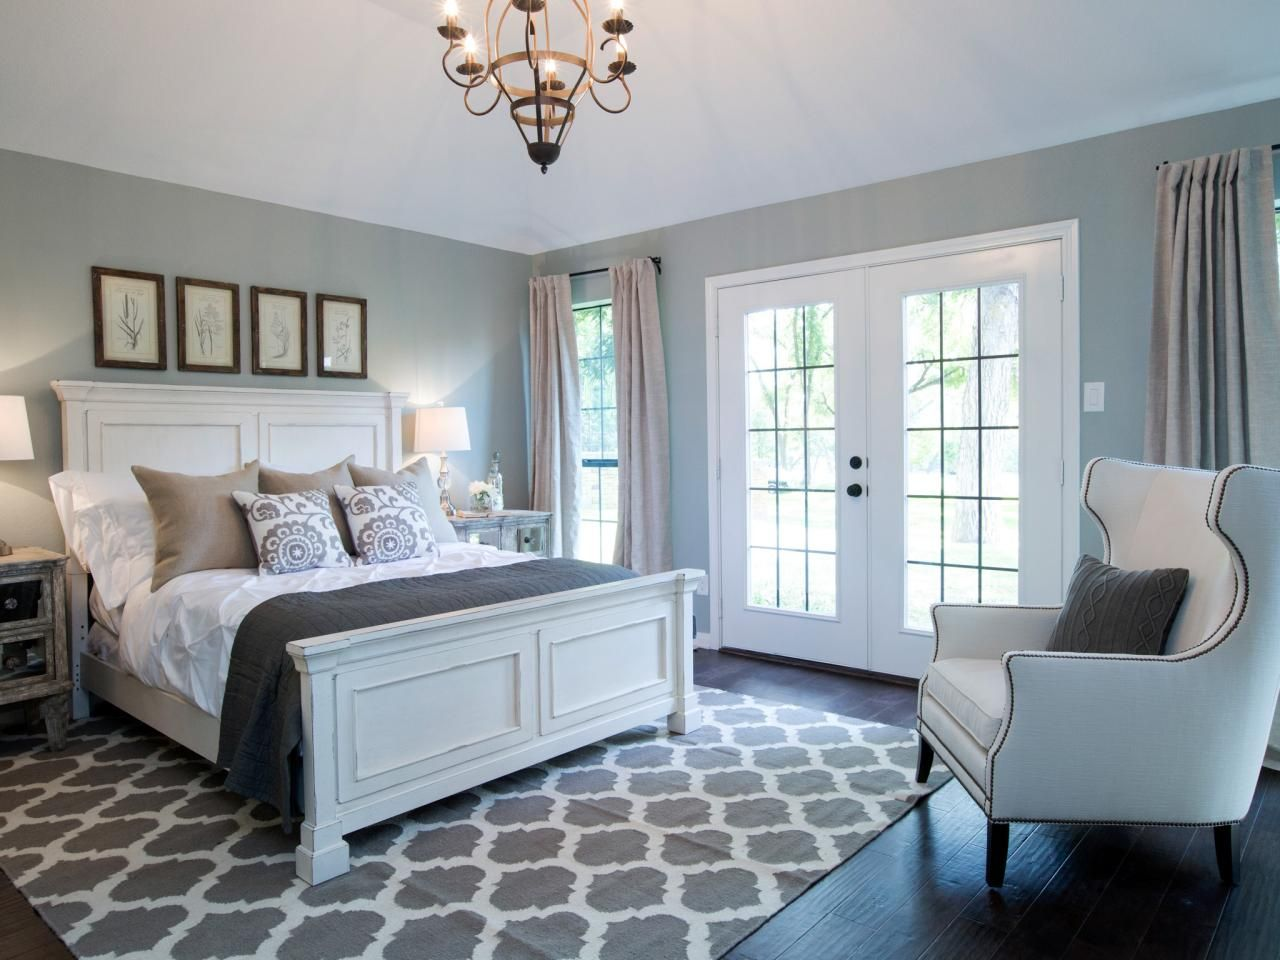 Beautiful Pretty And Relaxing Master Bedroom By Fixer Upper. Farmhouse But Not Too  Country #bedroomdecor